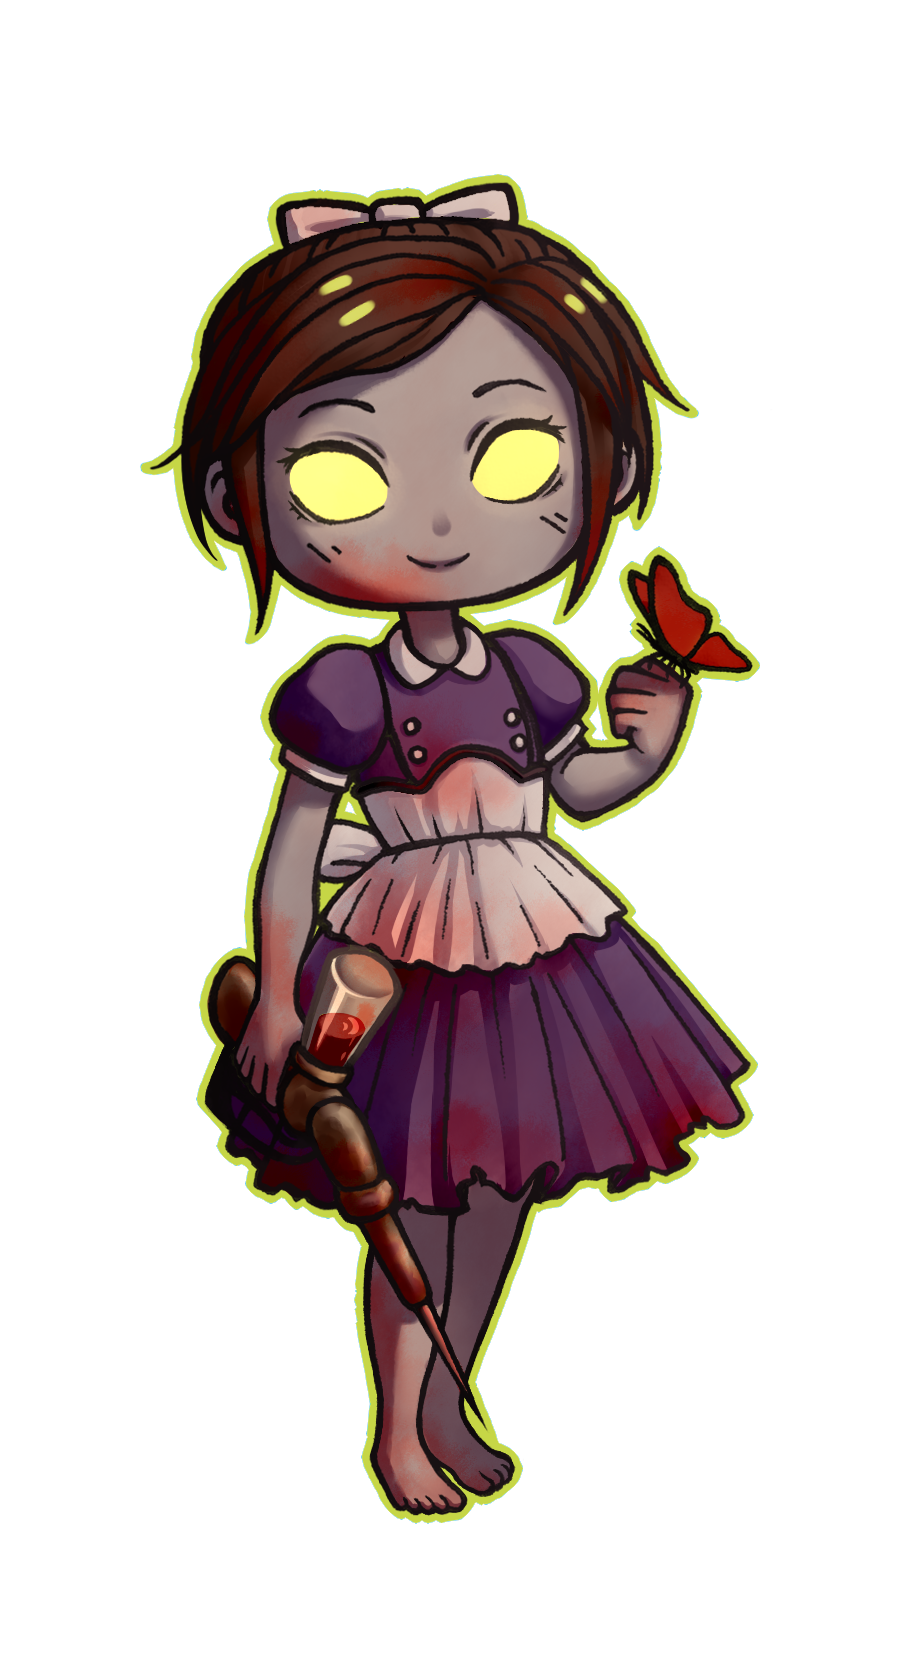 Bioshock drawing sister location. Little charm on storenvy